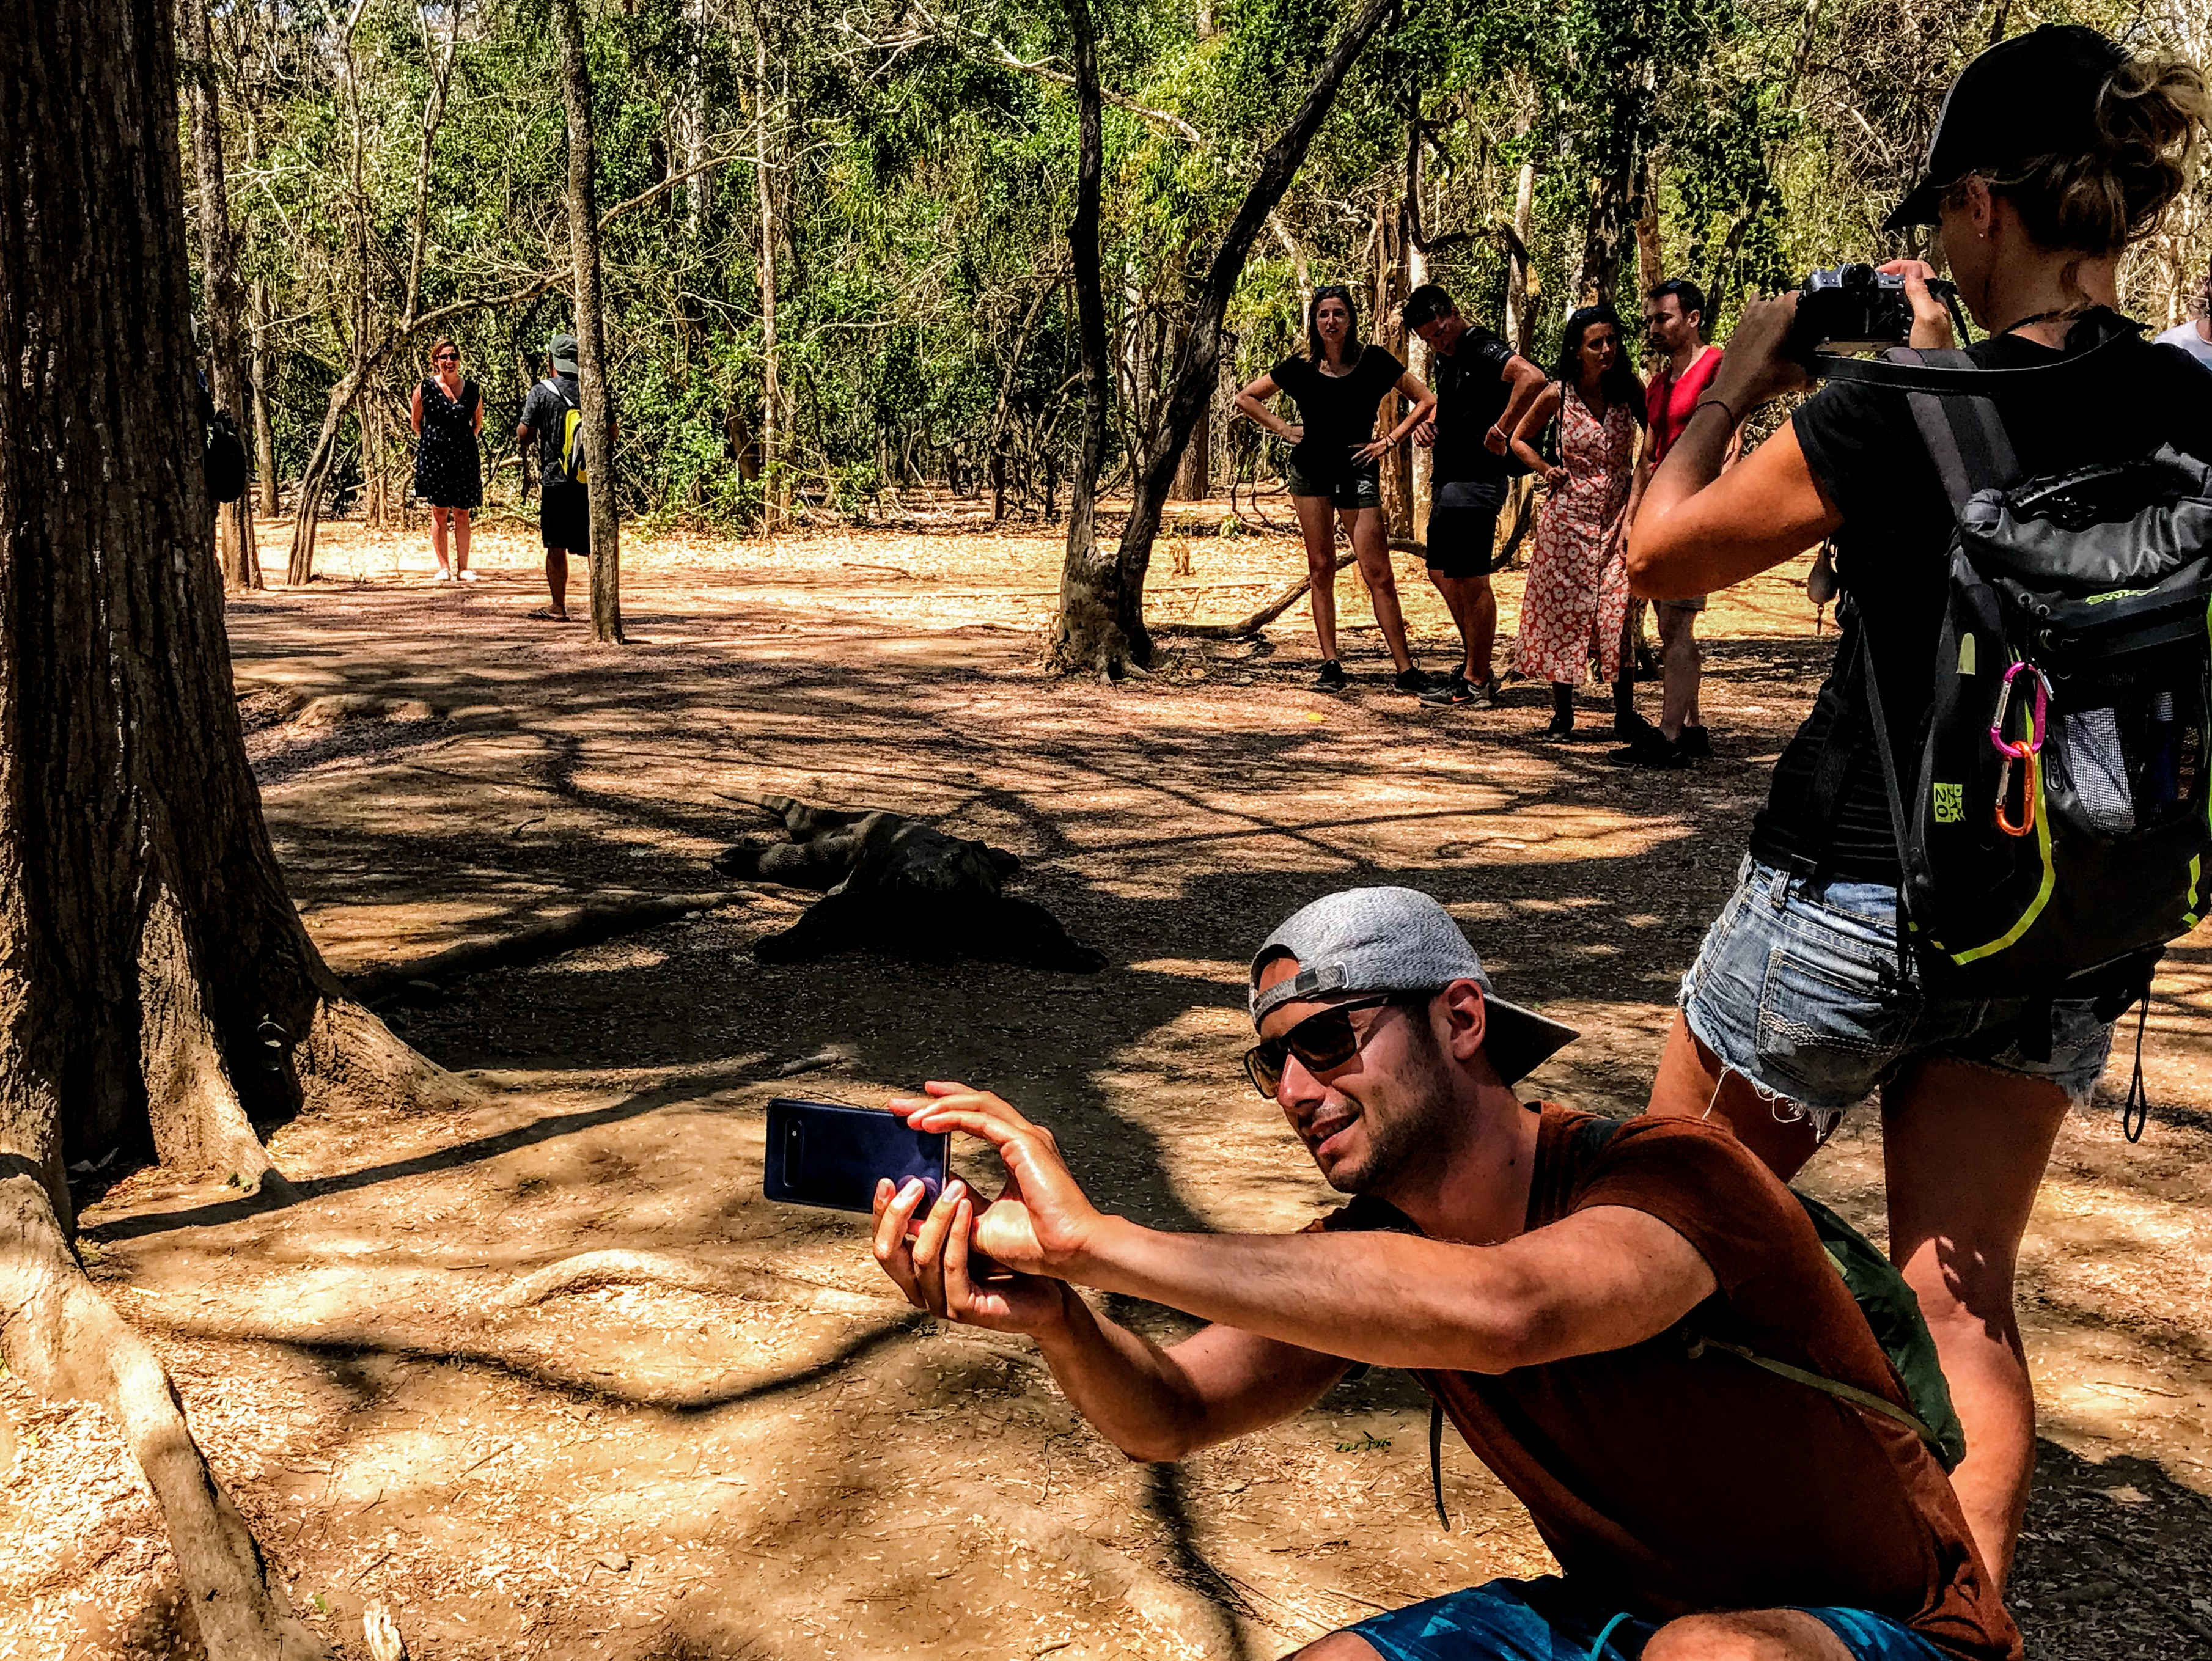 Tourist taking a selfie with a Komodo Dragon, Indonesia